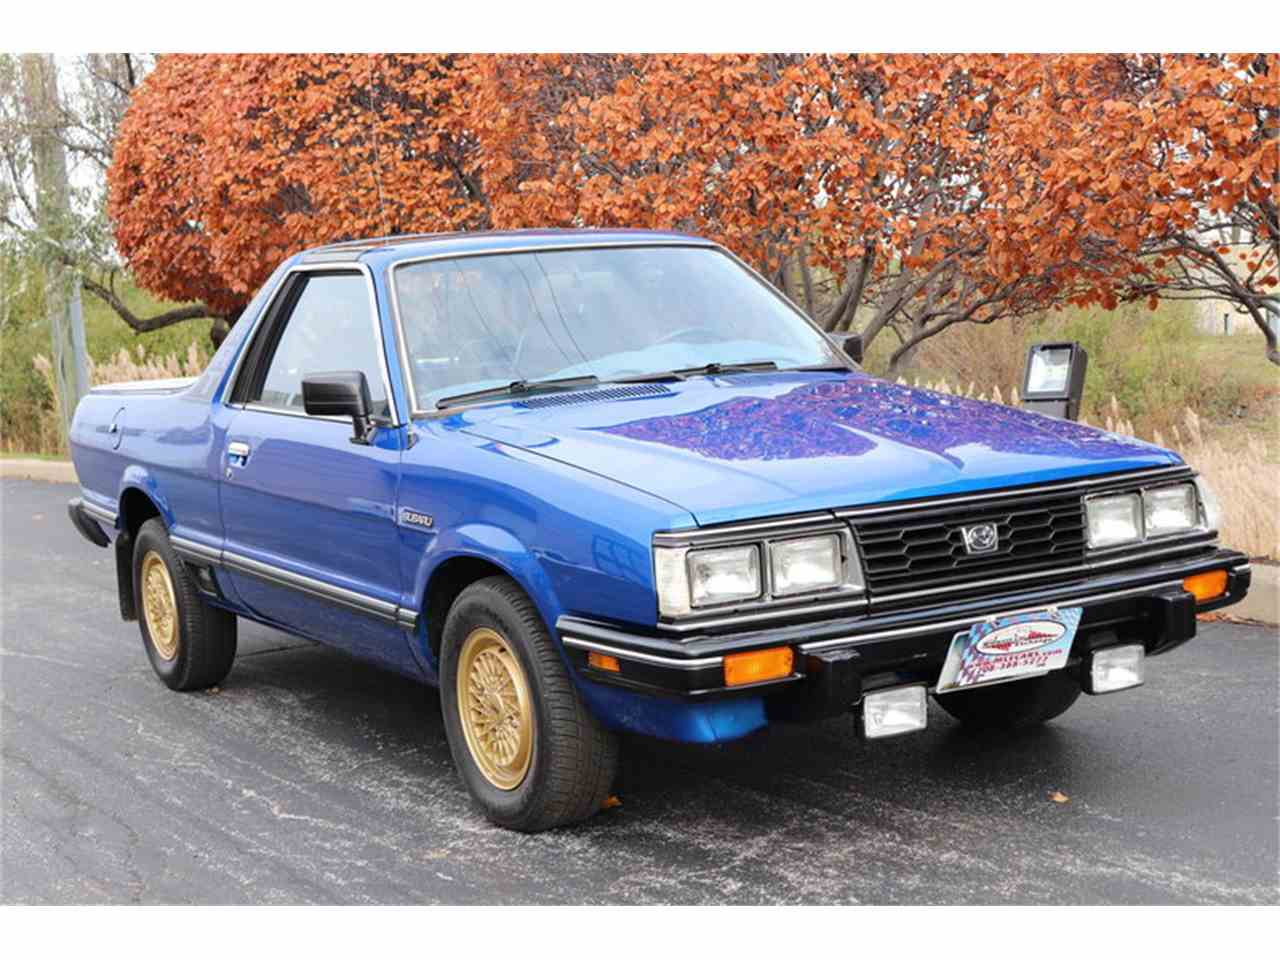 Large Picture of '83 Subaru Brat located in Illinois Offered by Midwest Car Exchange - M4TU